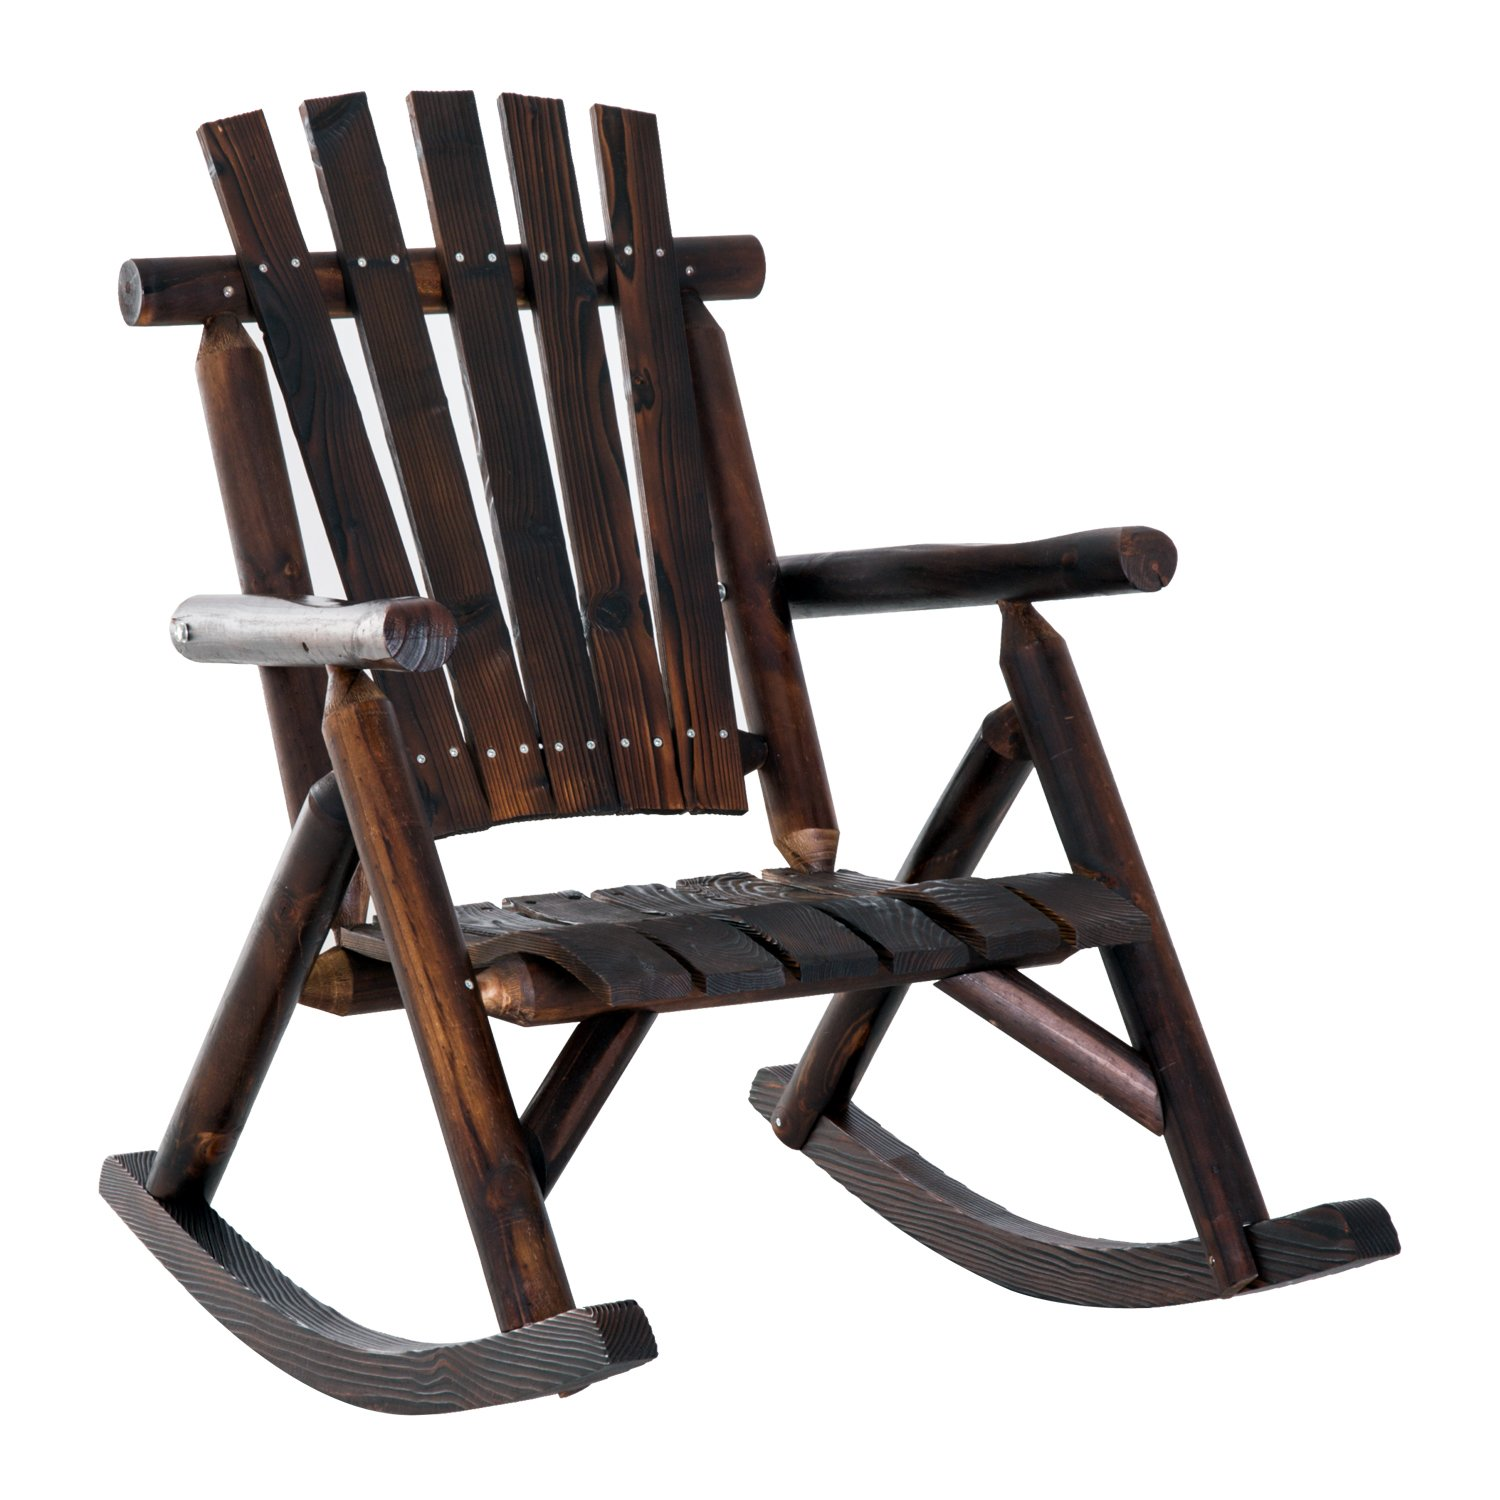 Outsunny Outdoor Fir Wood Rustic Patio Adirondack Rocking Chair Furniture